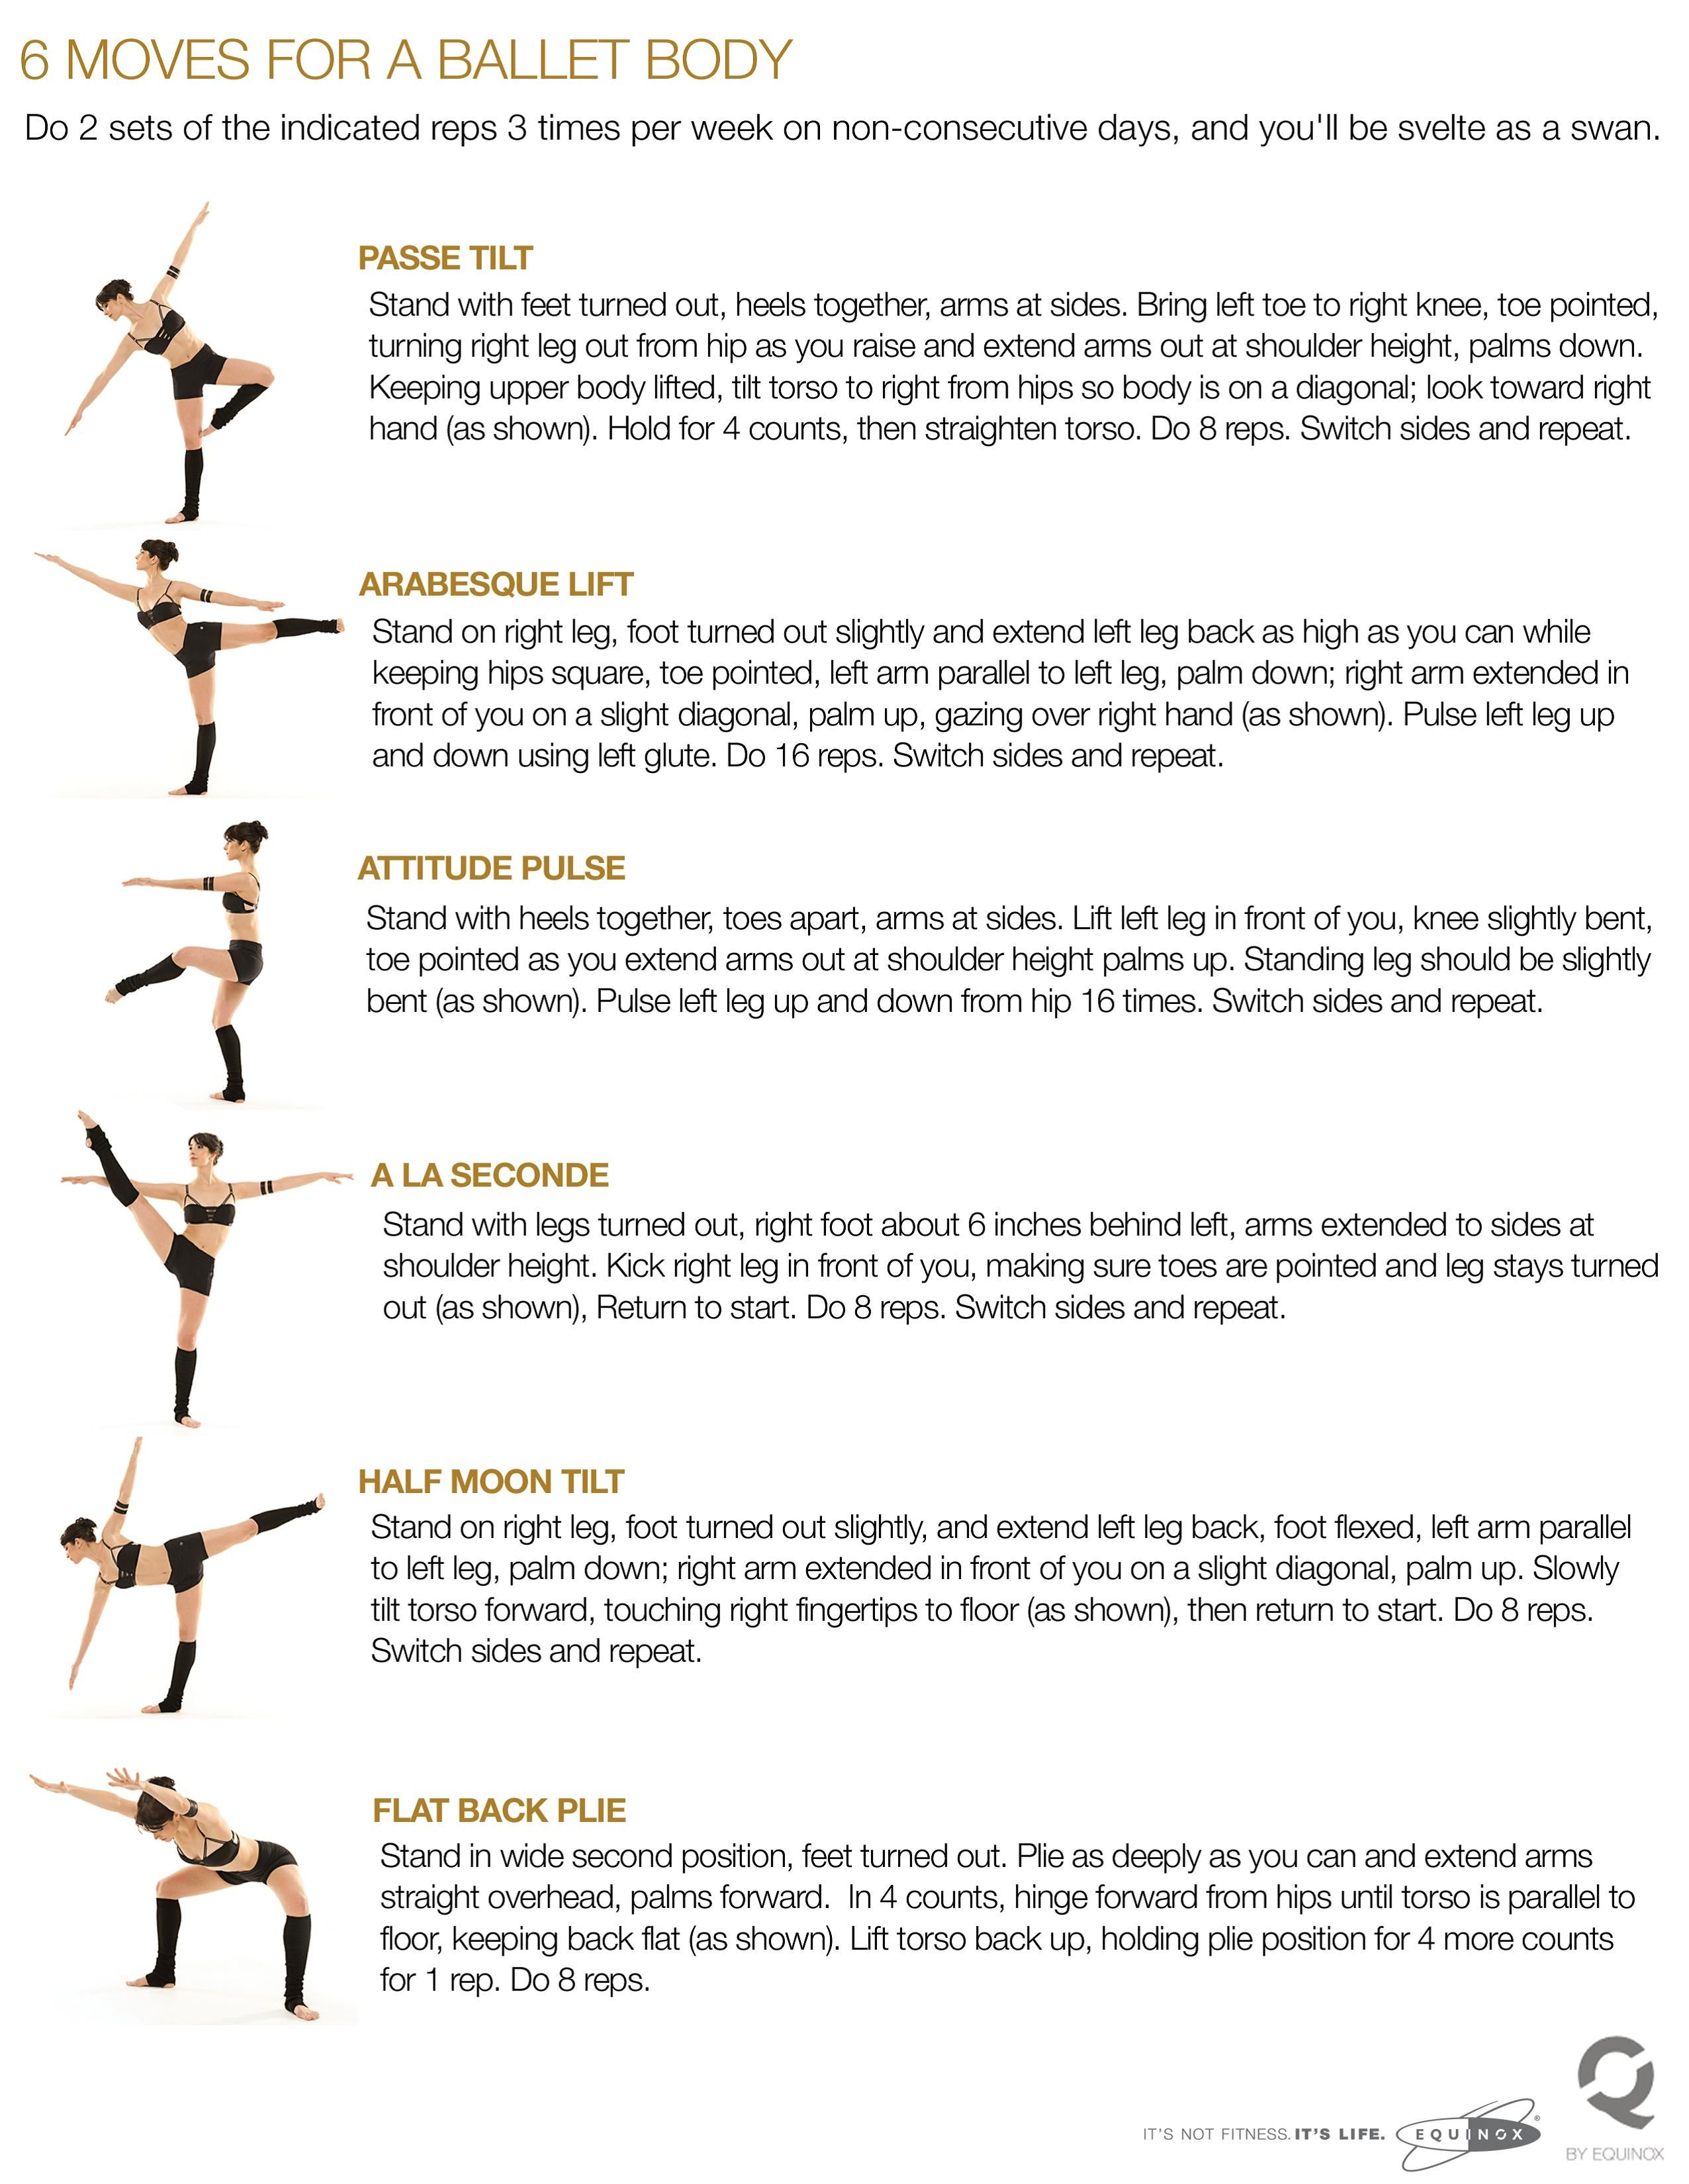 9728909f5 Haha.. well I definitely used to do most of these in ballet so no wonder  they would create a